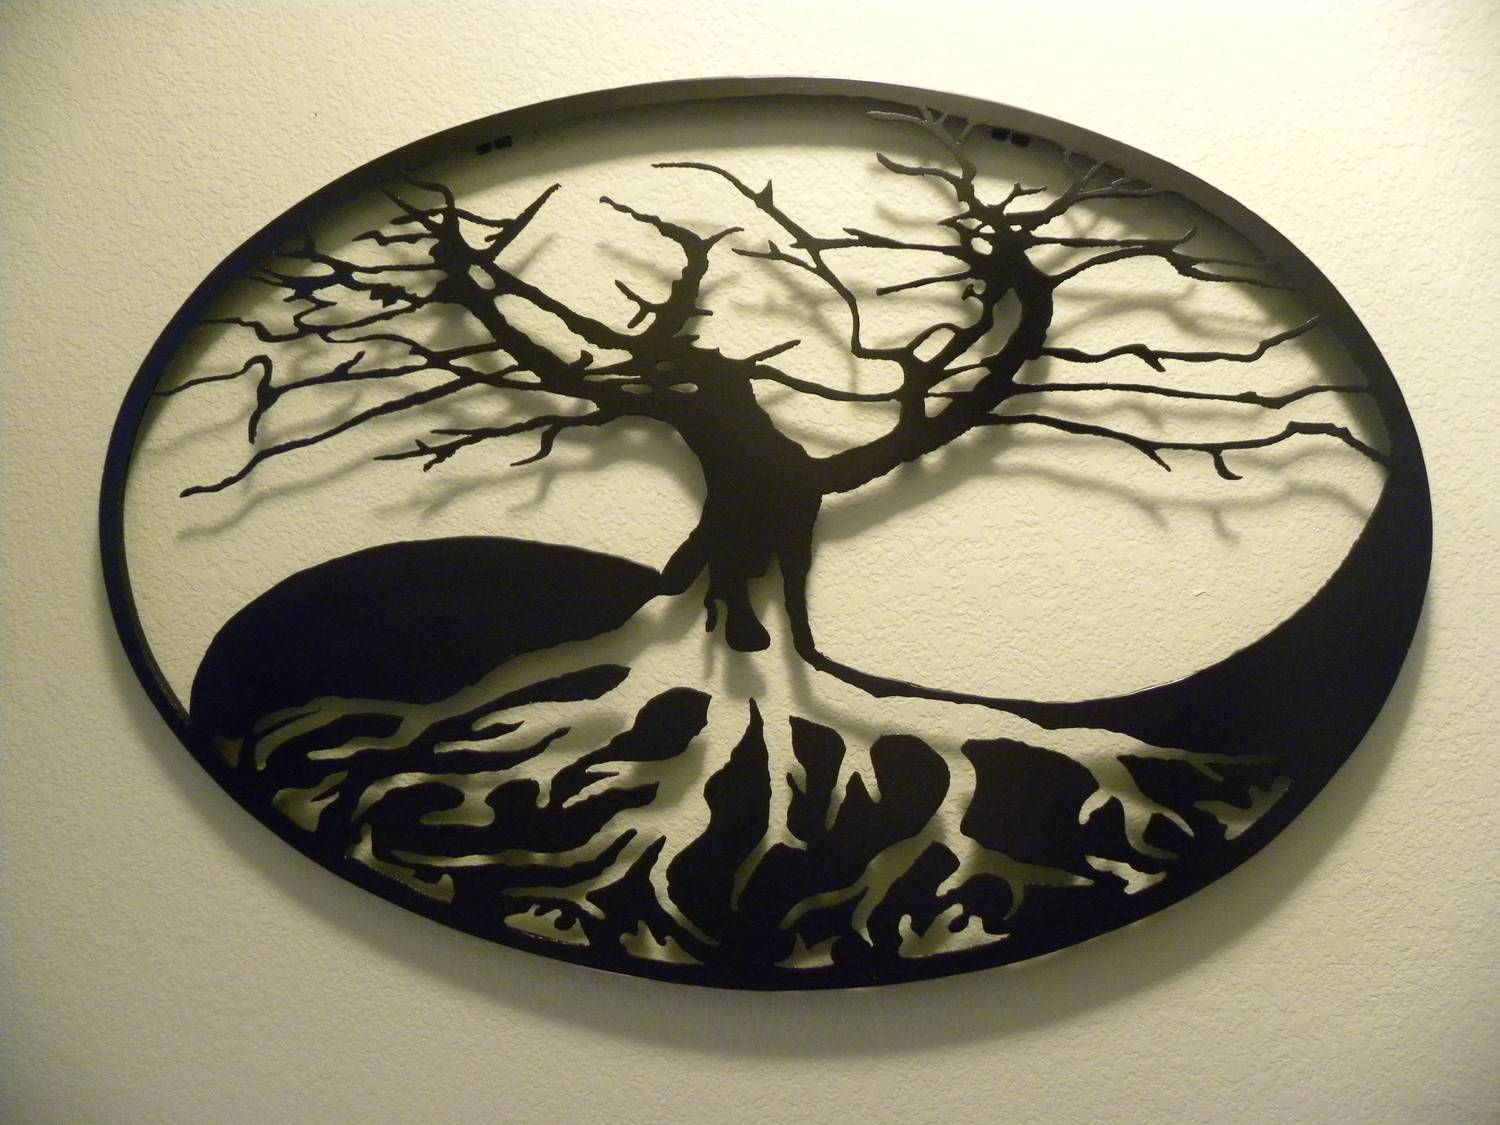 Oval Yin Yang Tree Of Life Metal Wall Art Intended For Most Current Yin Yang Wall Art (View 15 of 30)